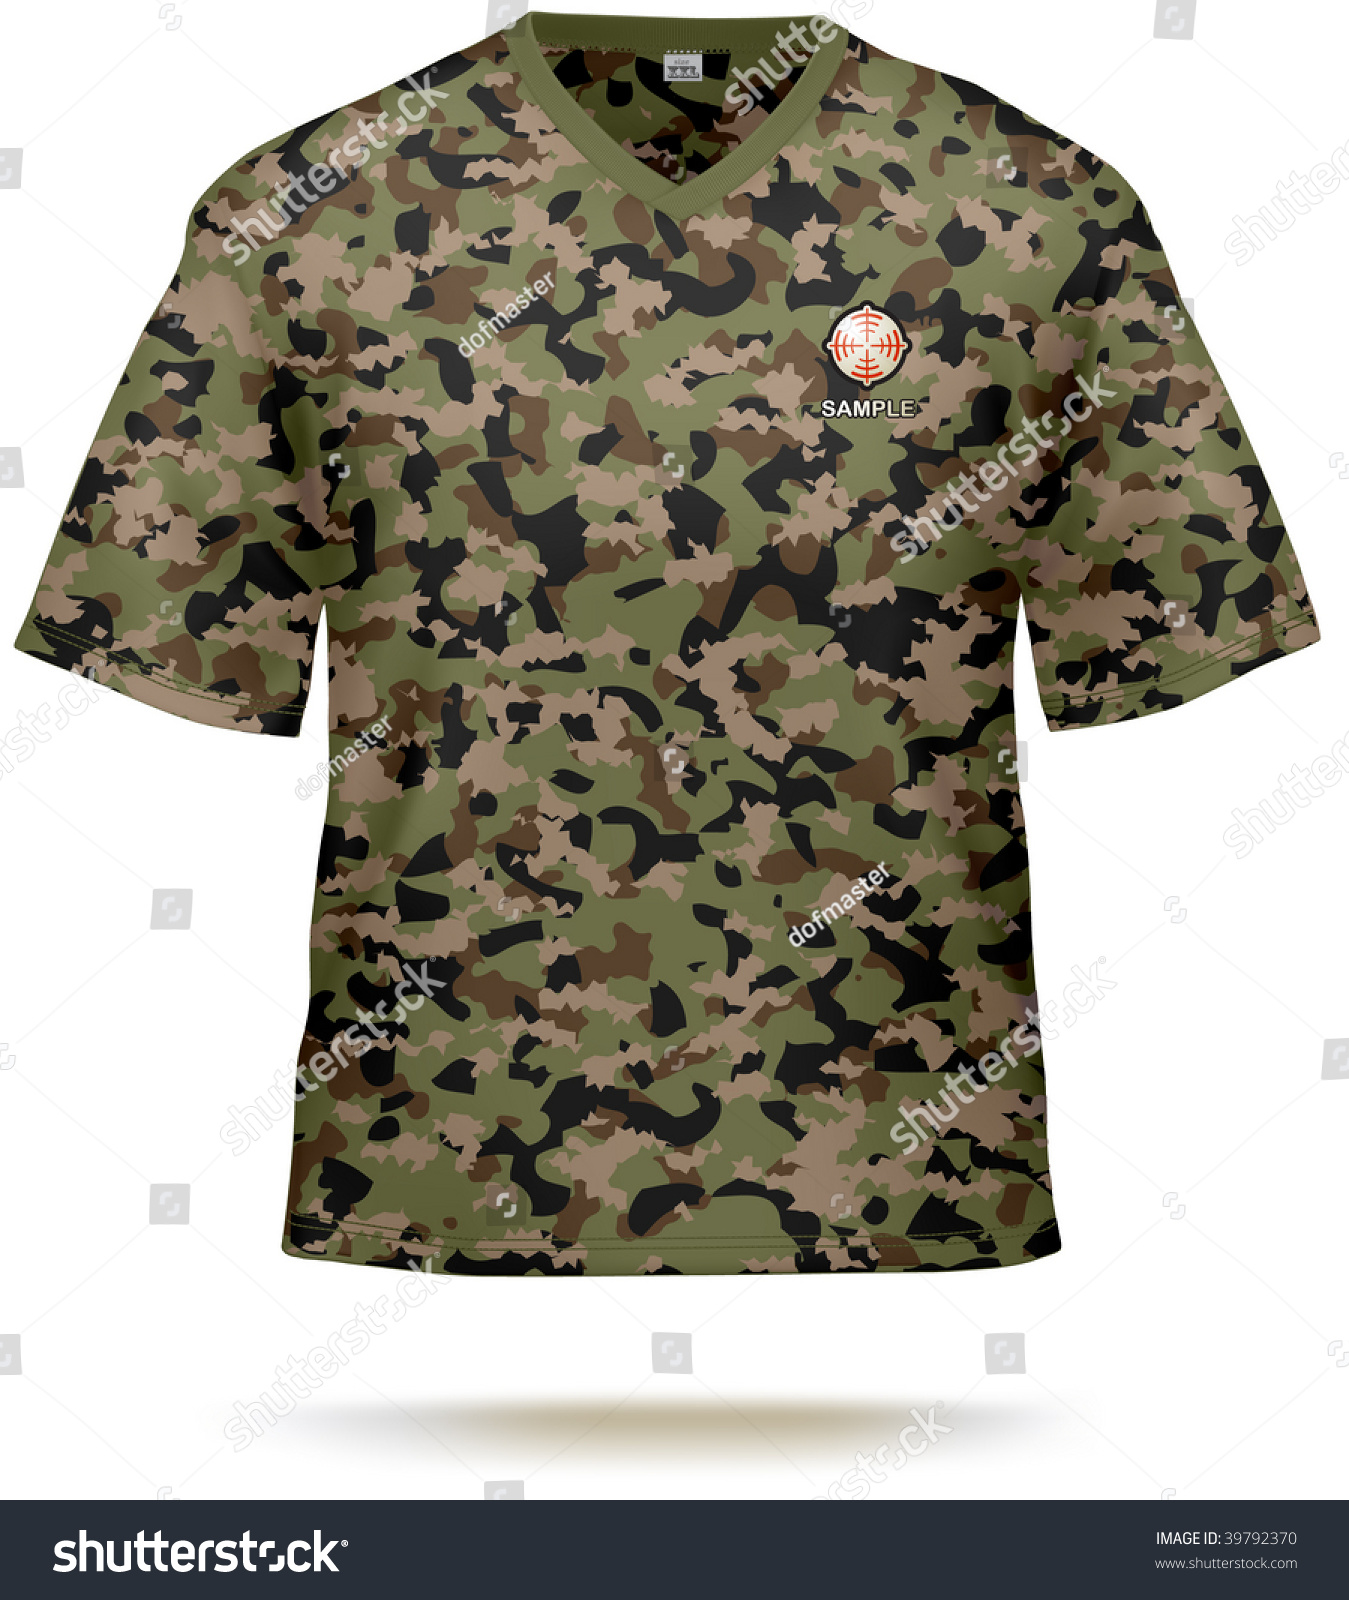 Camouflage t shirt design template with sample print for T shirt sample design